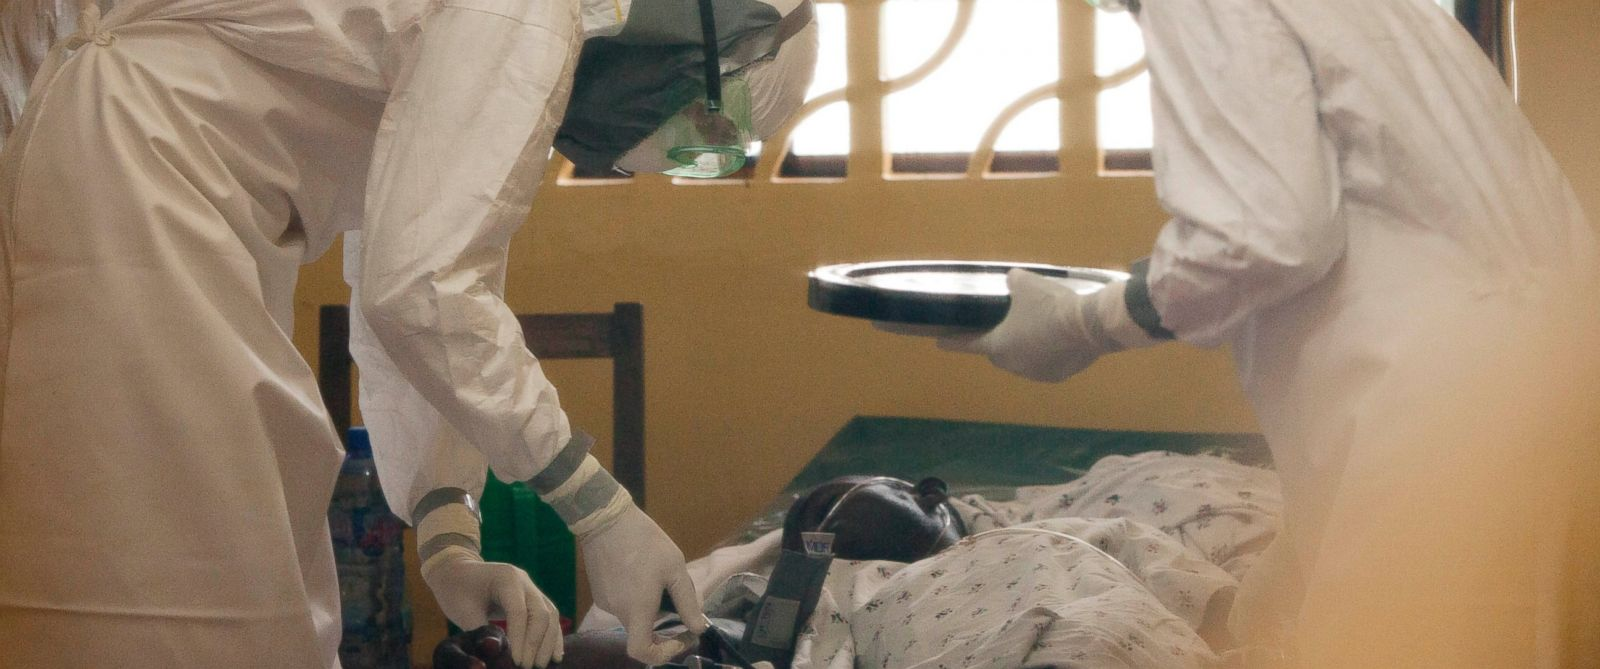 PHOTO: In this 2014 photo provided by the Samaritans Purse aid organization, Dr. Kent Brantly, left, treats an Ebola patient at the Samaritans Purse Ebola Case Management Center in Monrovia, Liberia.